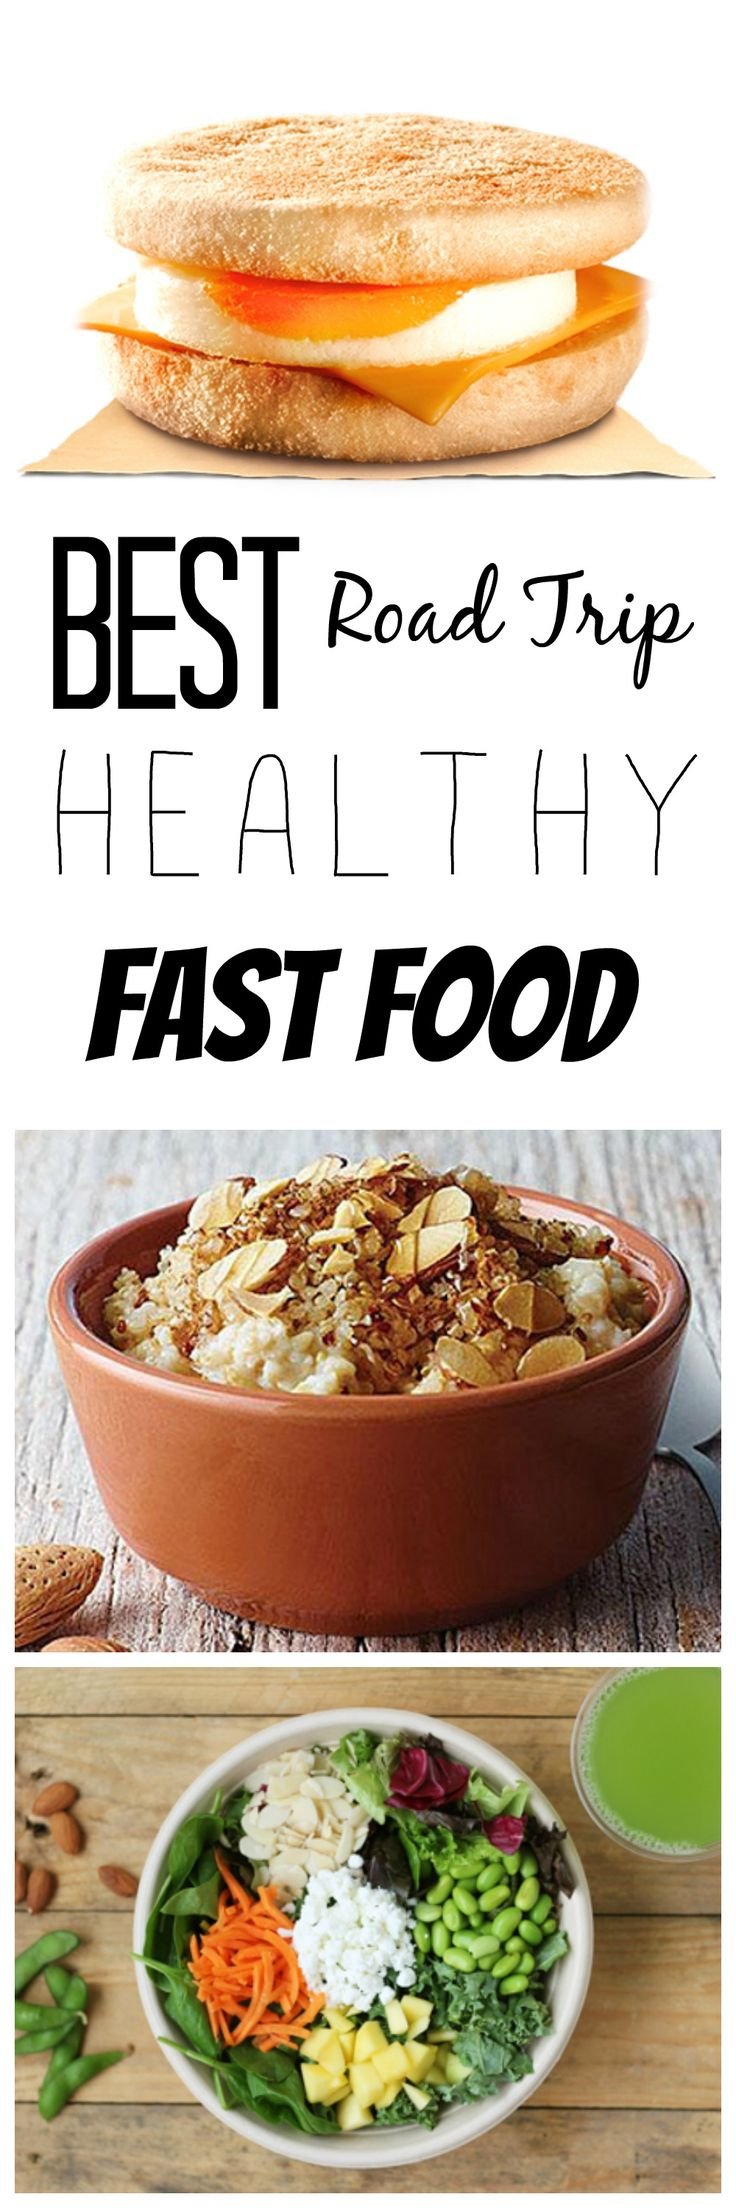 Best Healthy Fast Food from 13 Restaurants for Road Trip Food!